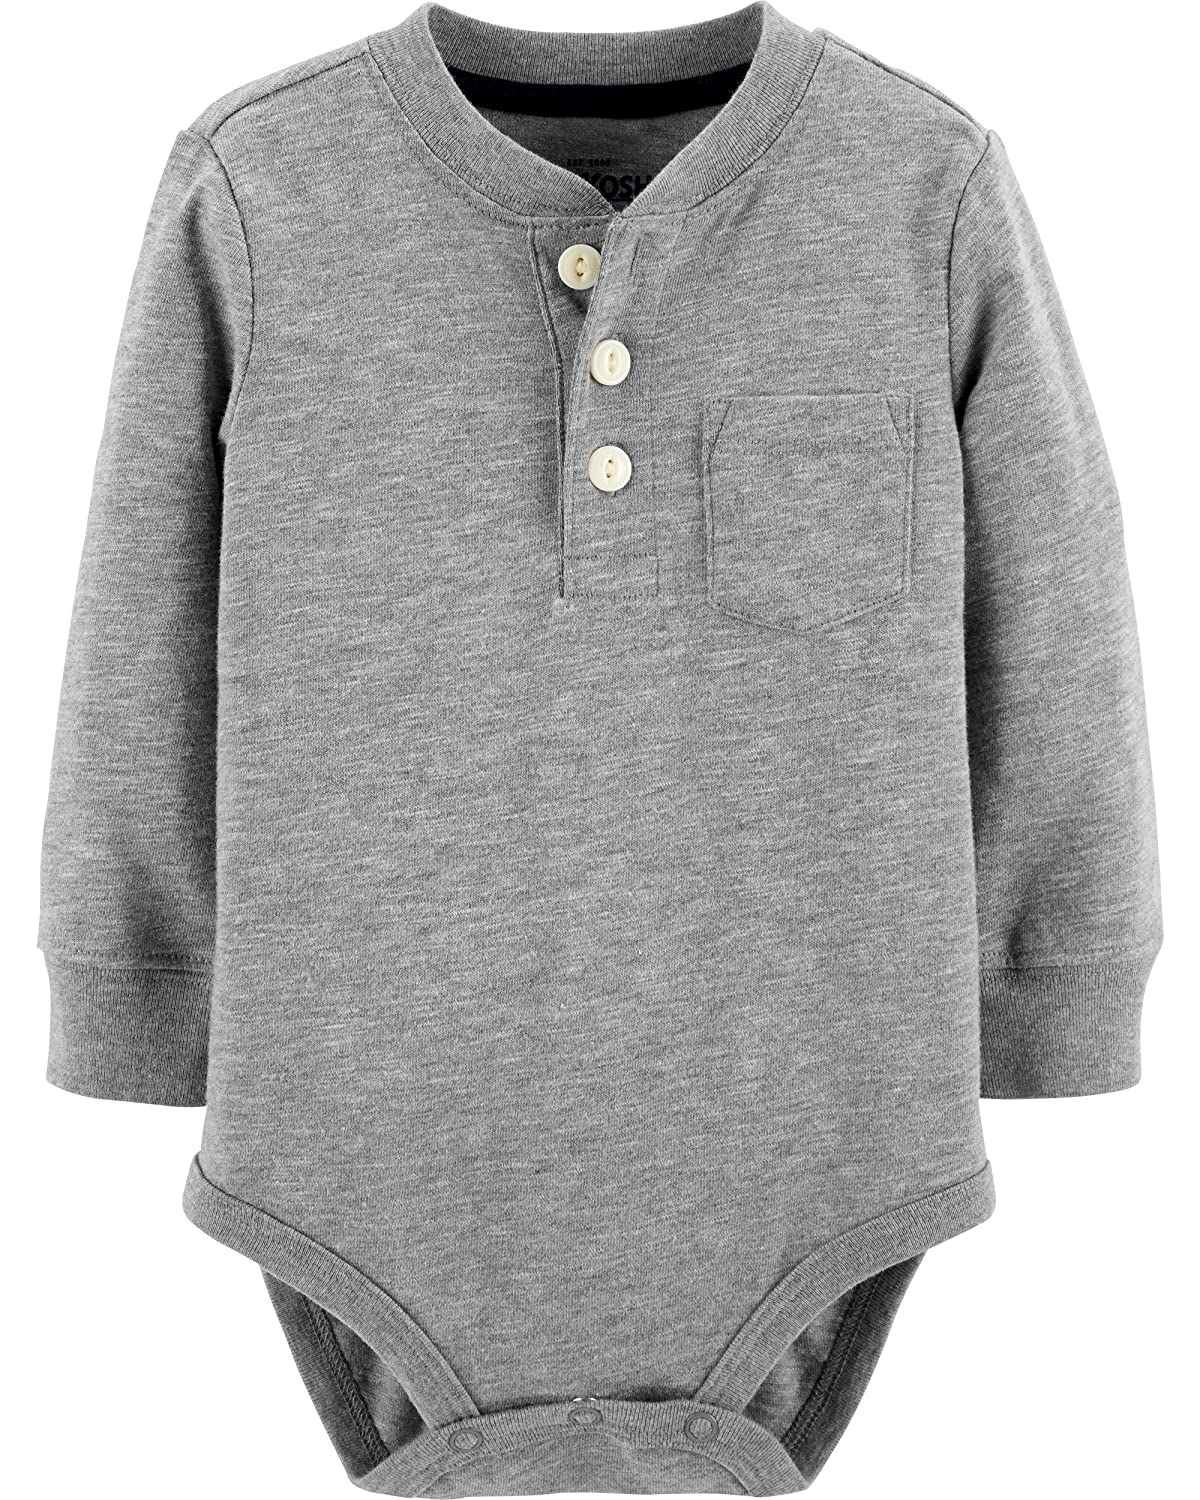 e66d493bdd5c Amazon.com  OshKosh B Gosh Baby Boys  Pocket Henley Bodysuits  Clothing